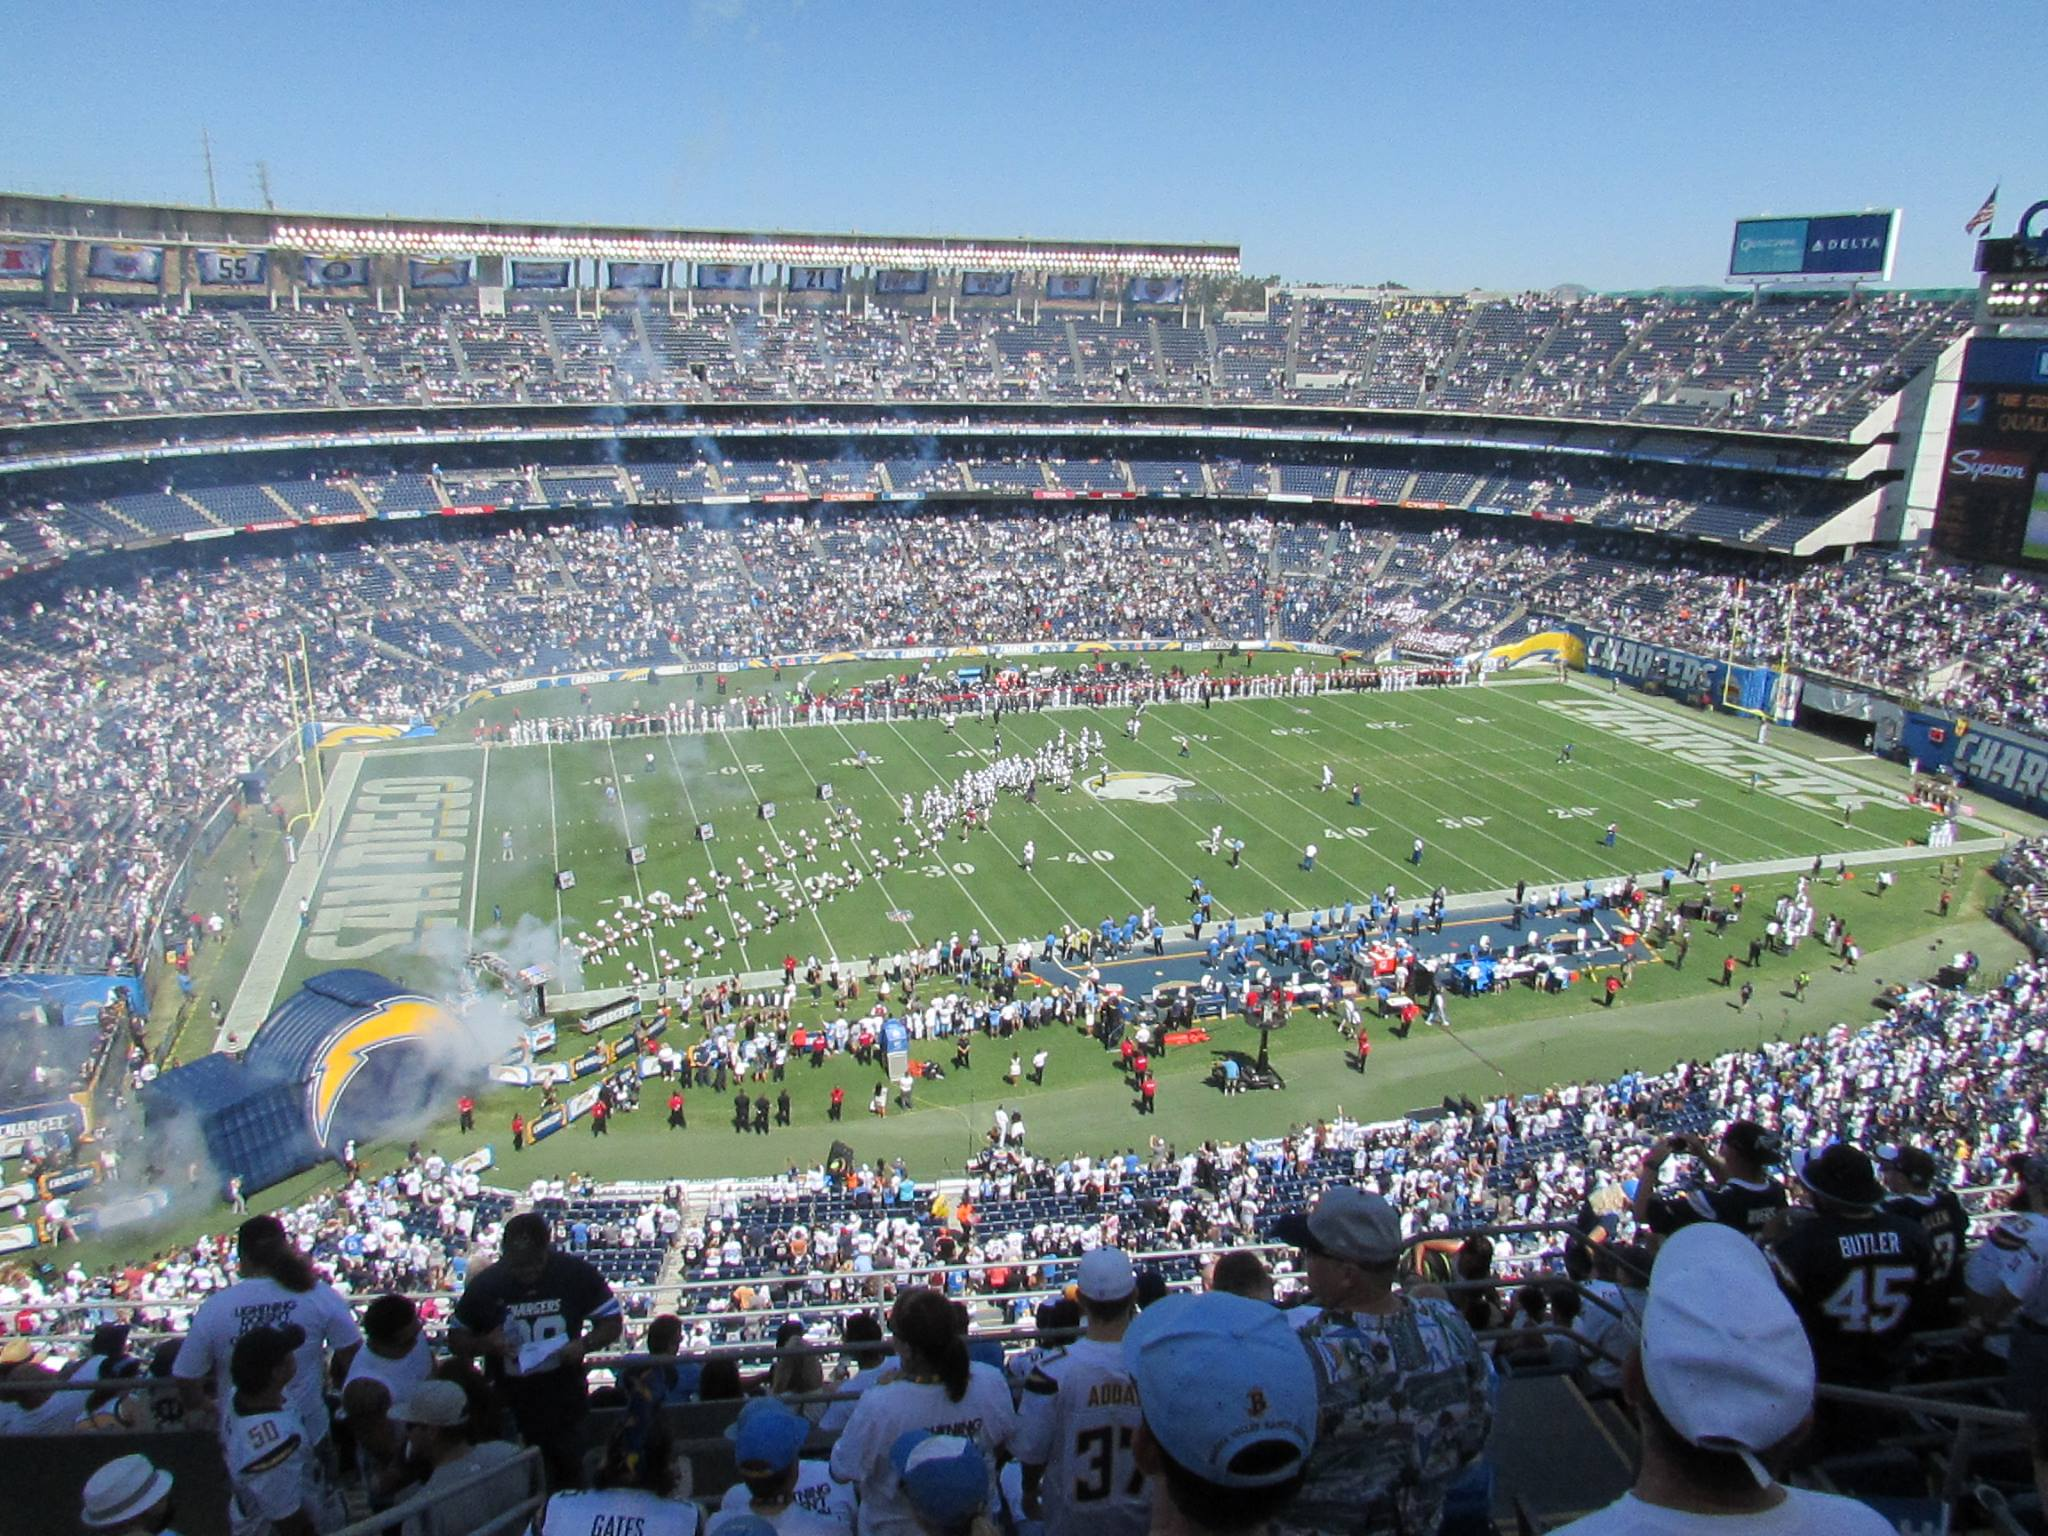 View from top-row seats at the San Diego Charger Stadium.